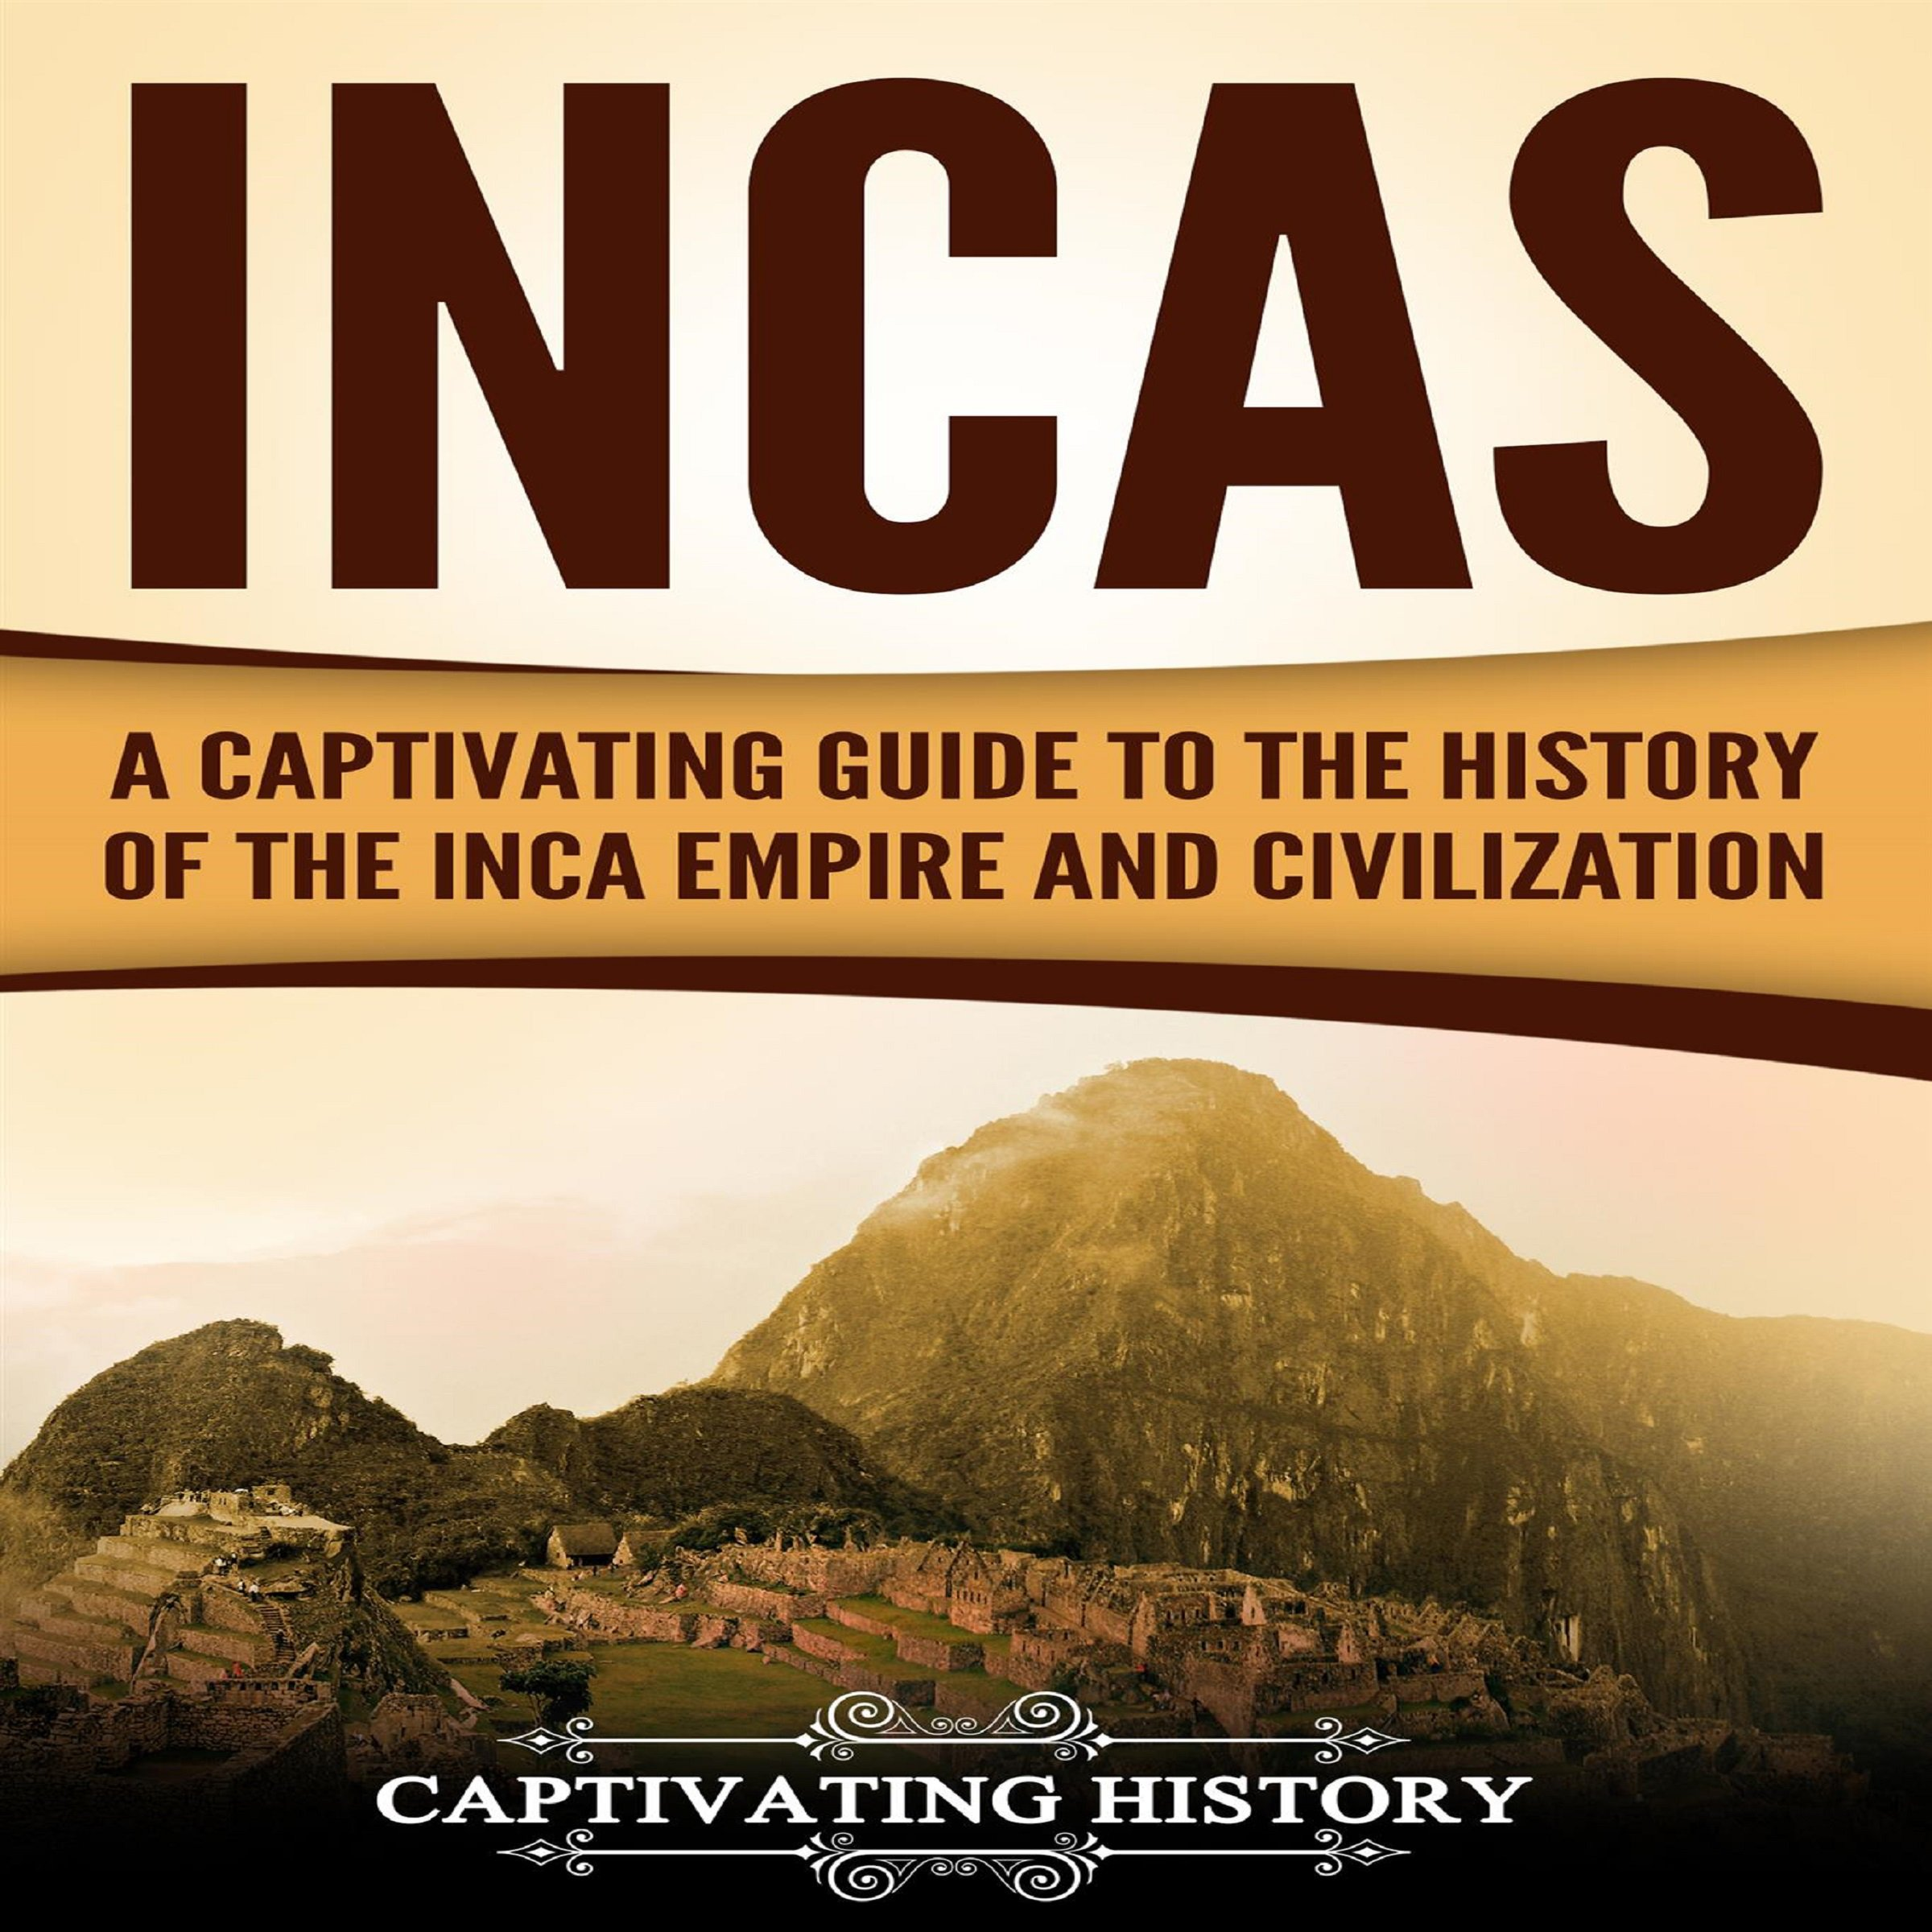 Incas: A Captivating Guide to the History of the